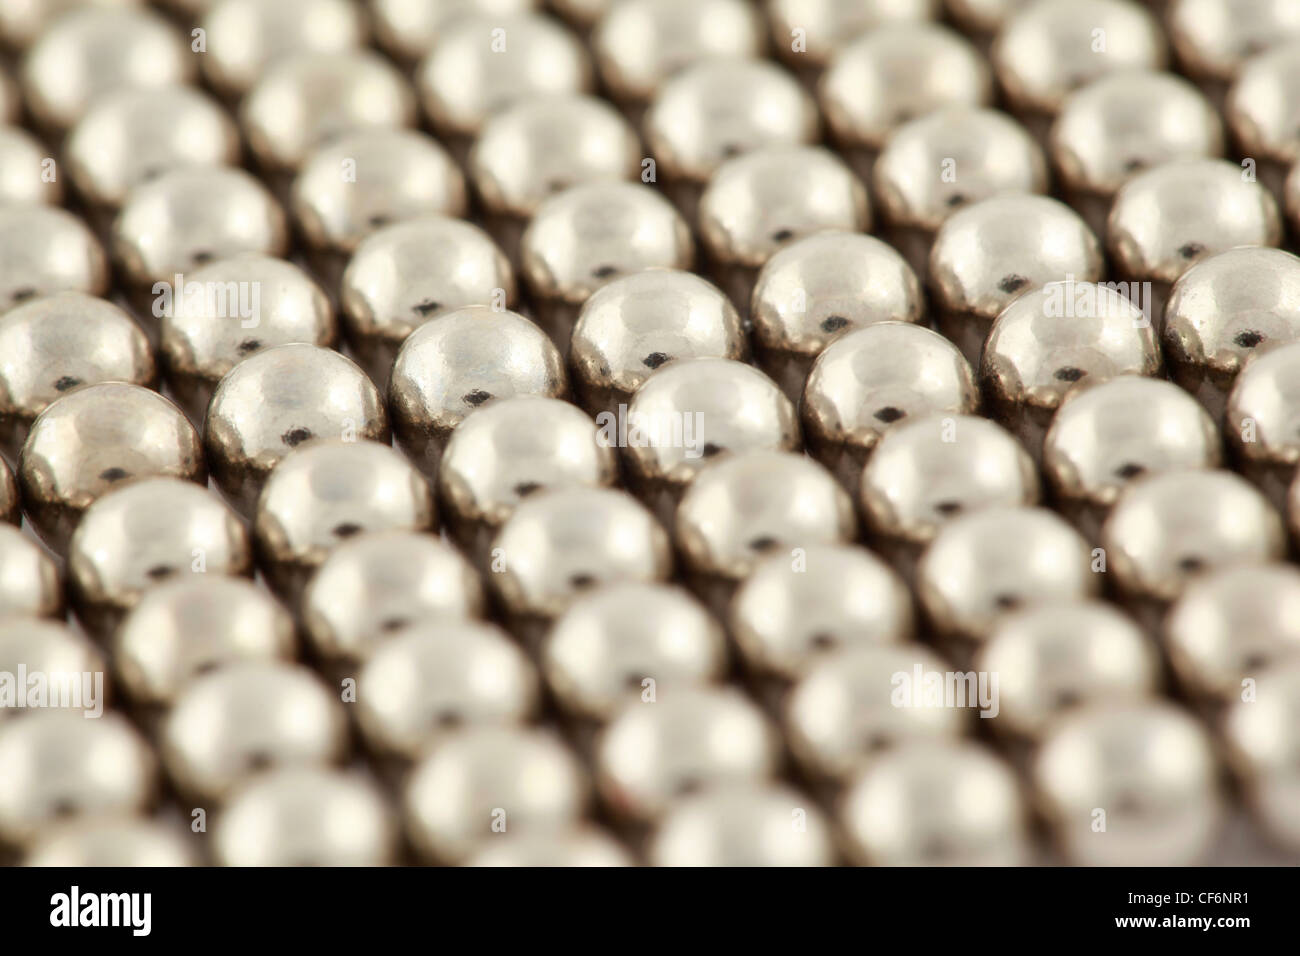 Silvery beads are interlaced together Stock Photo